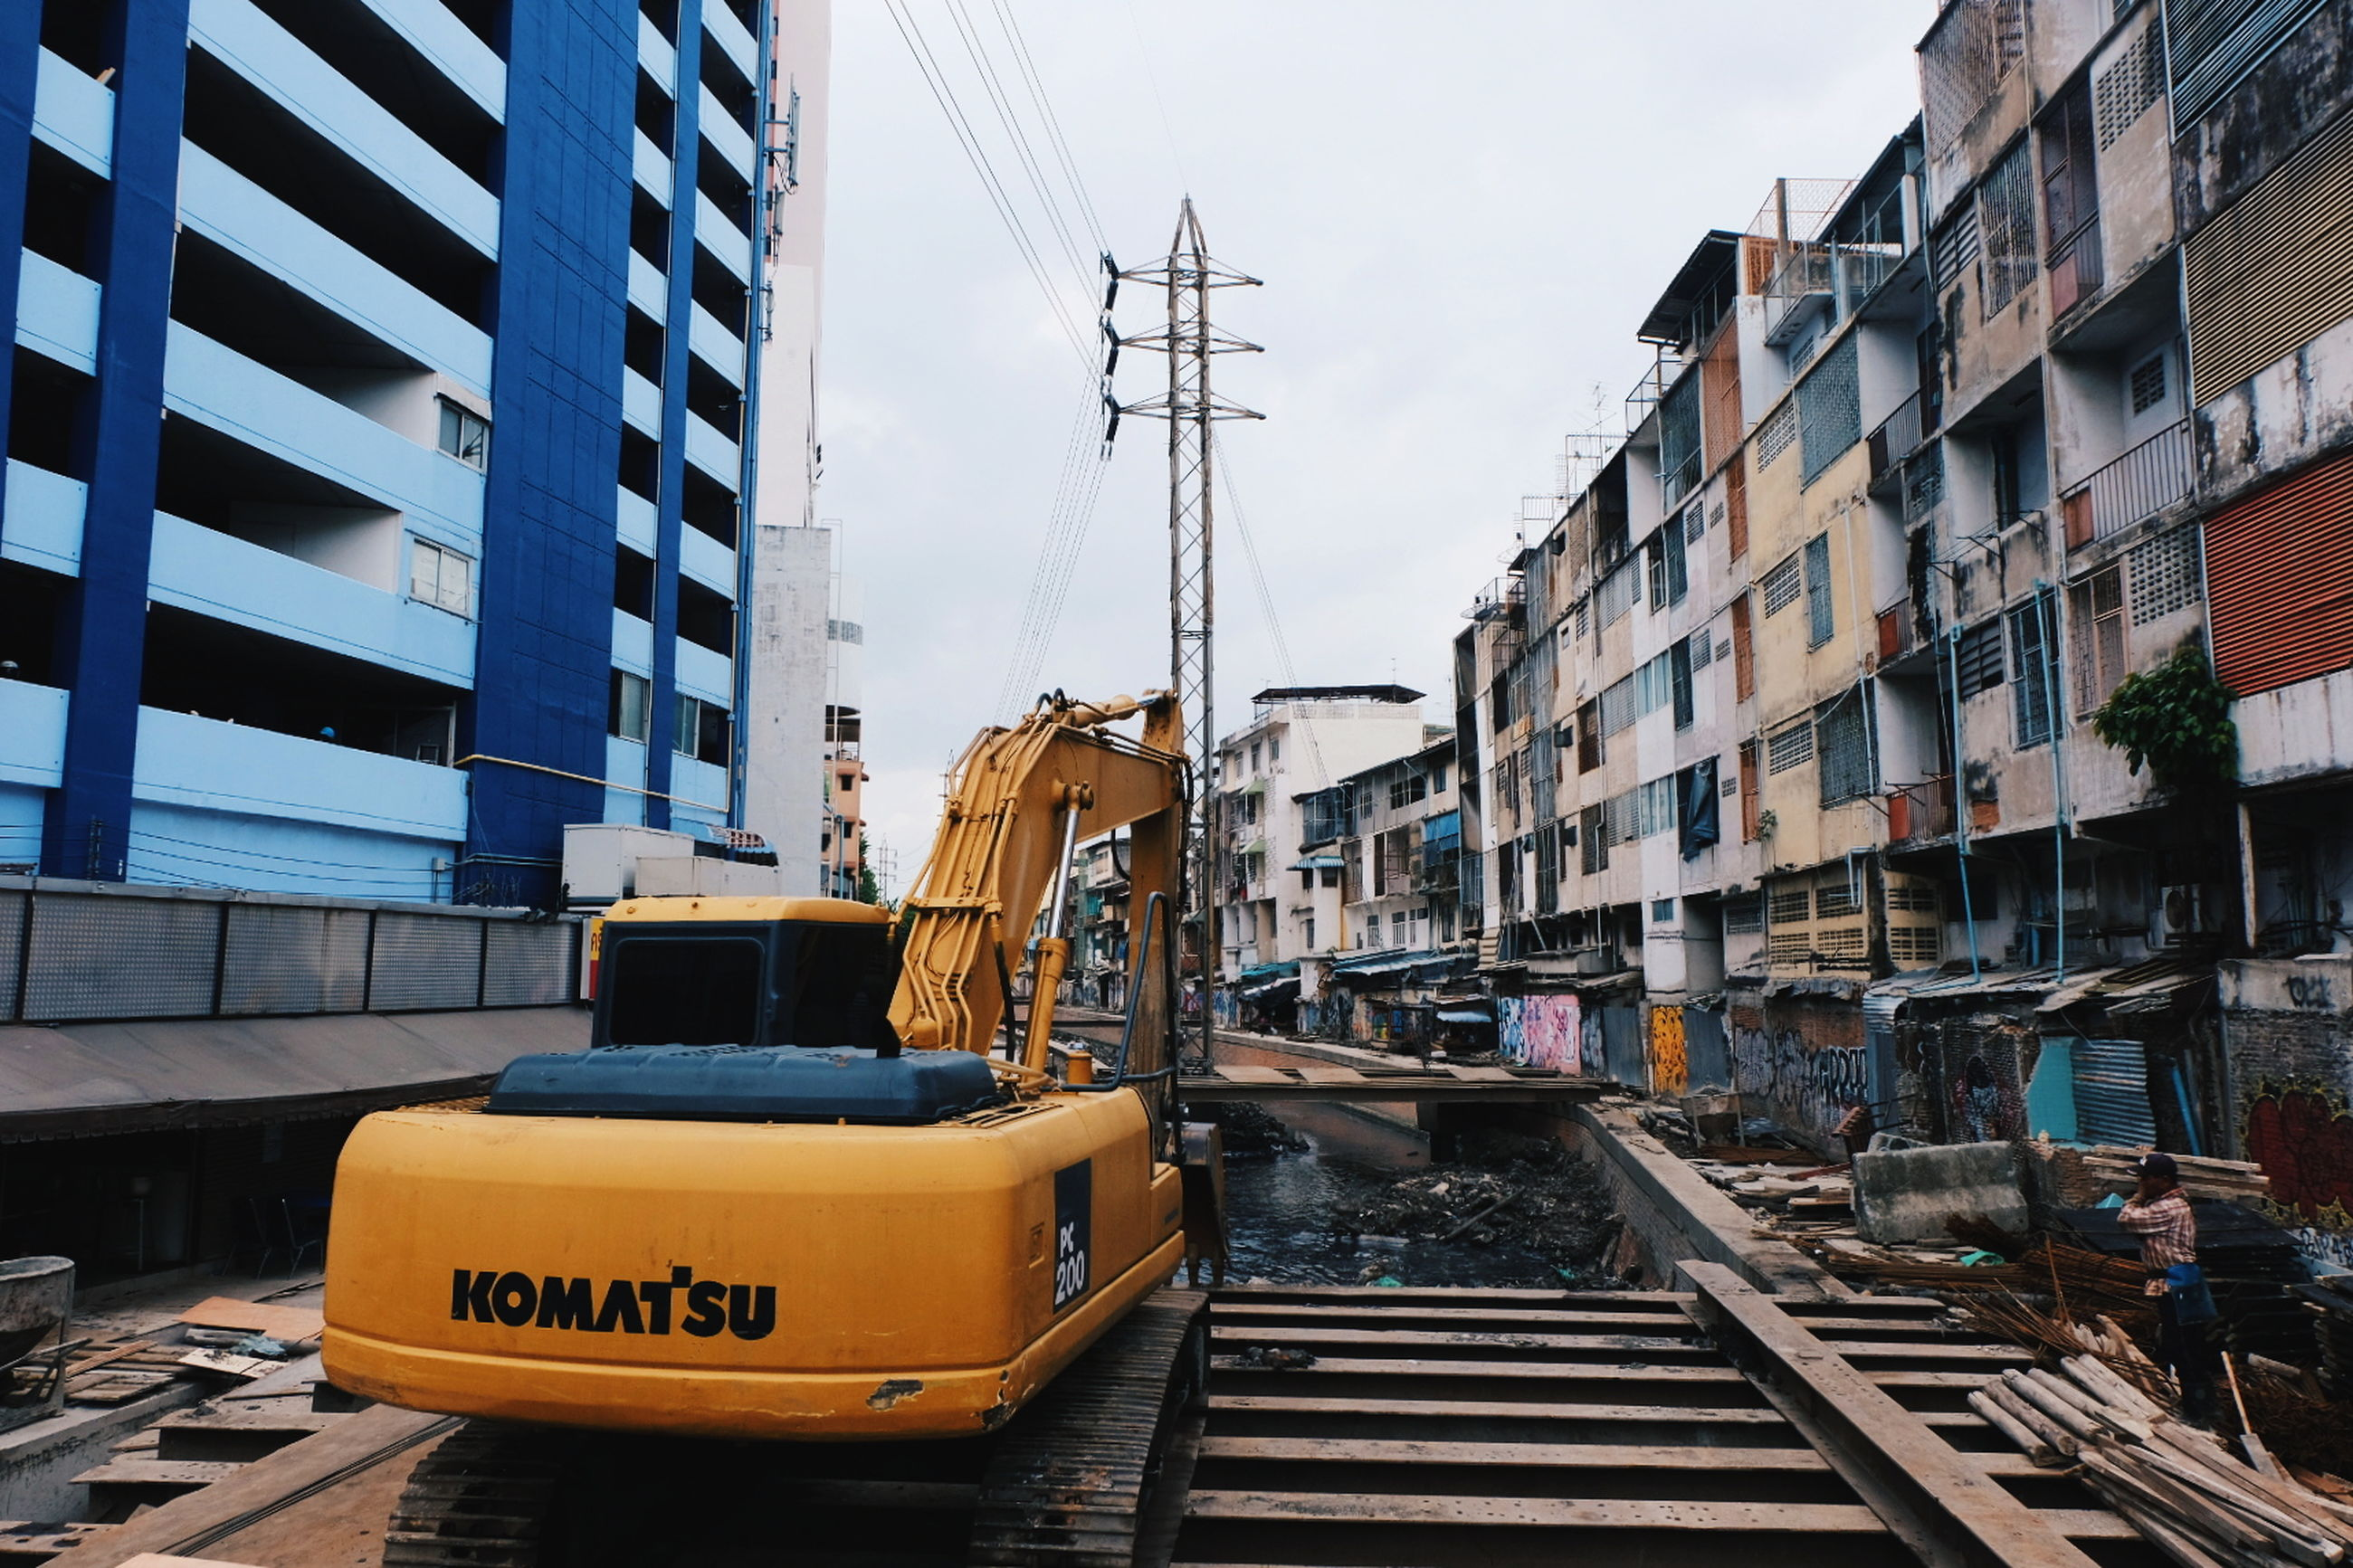 architecture, built structure, building exterior, transportation, sky, machinery, city, day, mode of transportation, nature, crane - construction machinery, building, outdoors, no people, communication, construction industry, nautical vessel, text, industry, public transportation